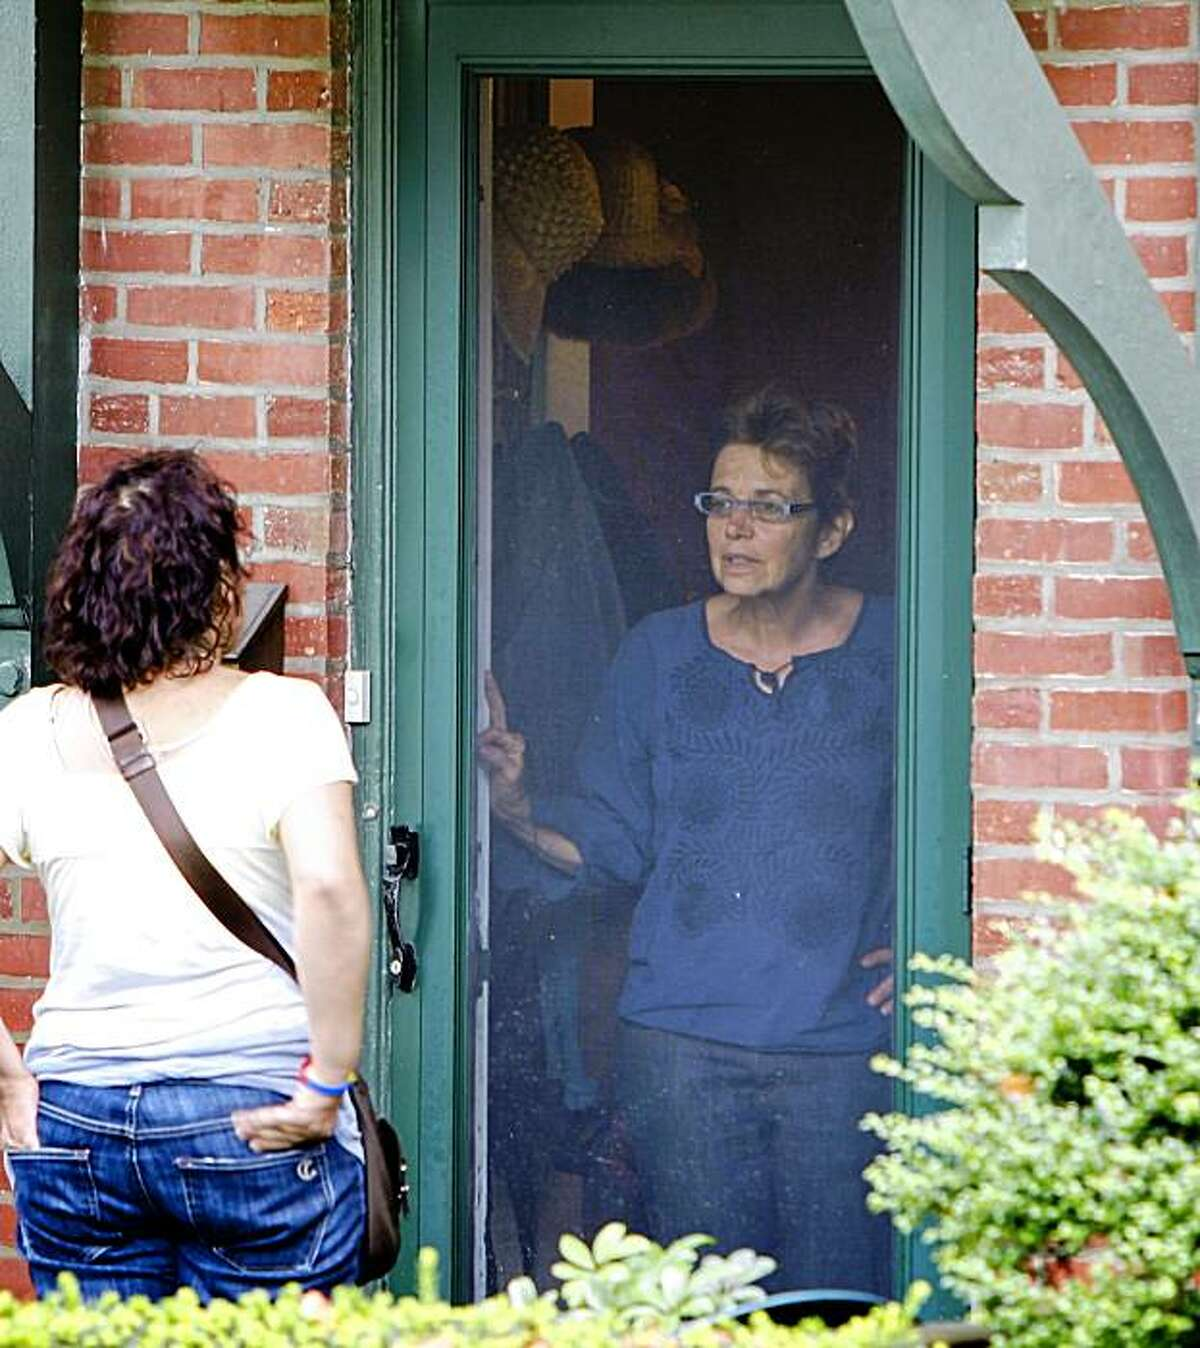 A member of the local news media, left, attempts to speak with family of missing American Joshua Fattal at his parents home in Elkins Park Pa., on Sunday Aug. 2, 2009. The subject inside the home offered no comment. (AP Photo/ Joseph Kaczmarek)